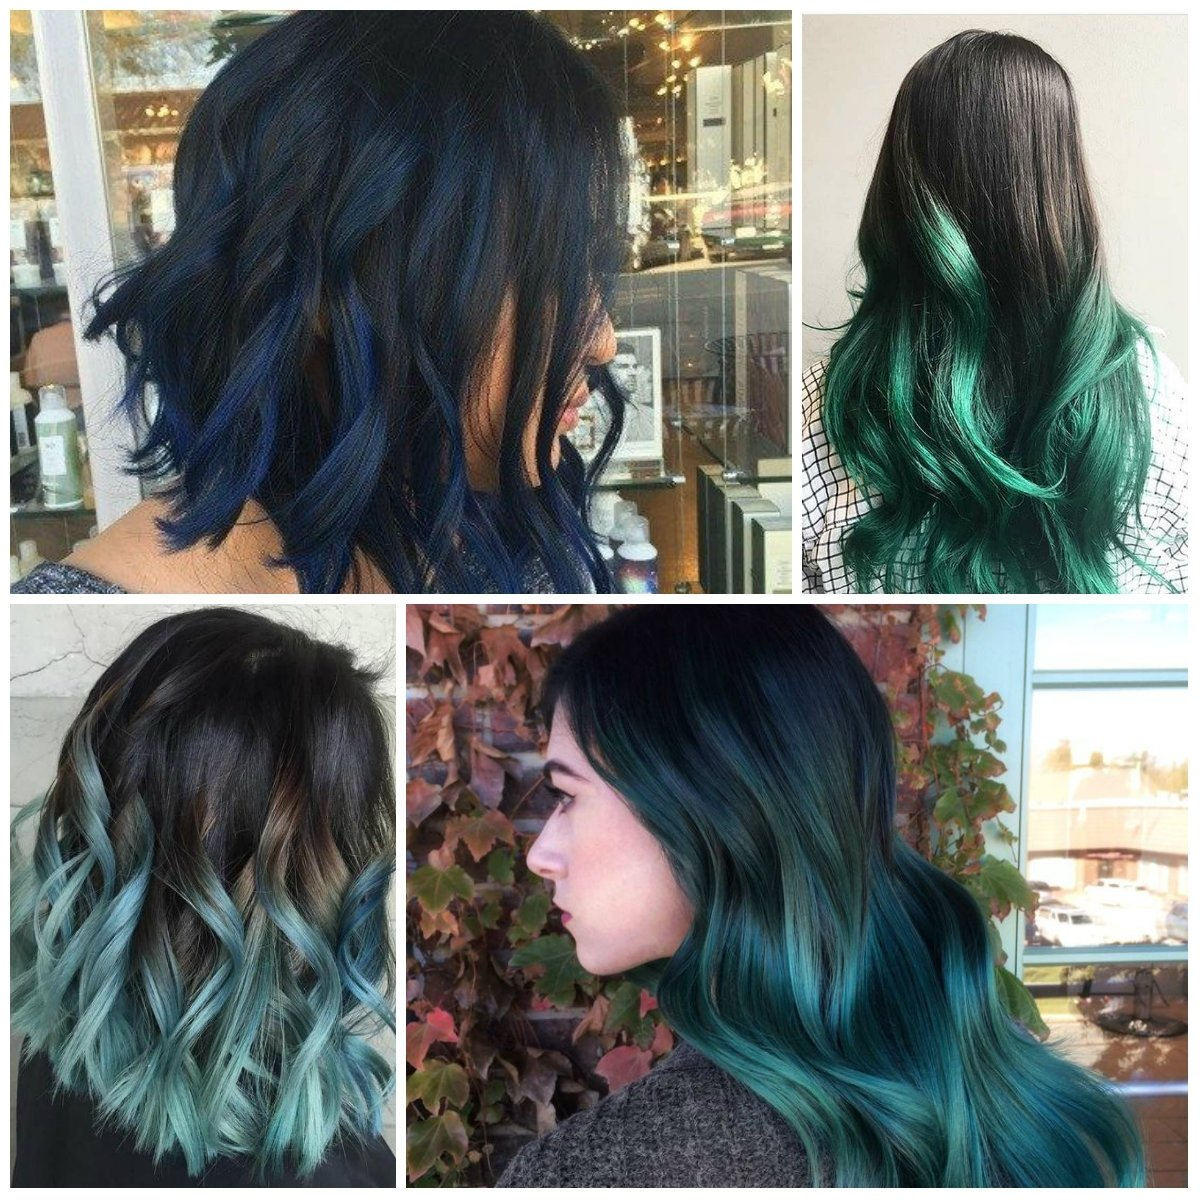 10 Stylish Hair Color Ideas Long Hair ombre best hair color ideas trends in 2017 2018 2 2020